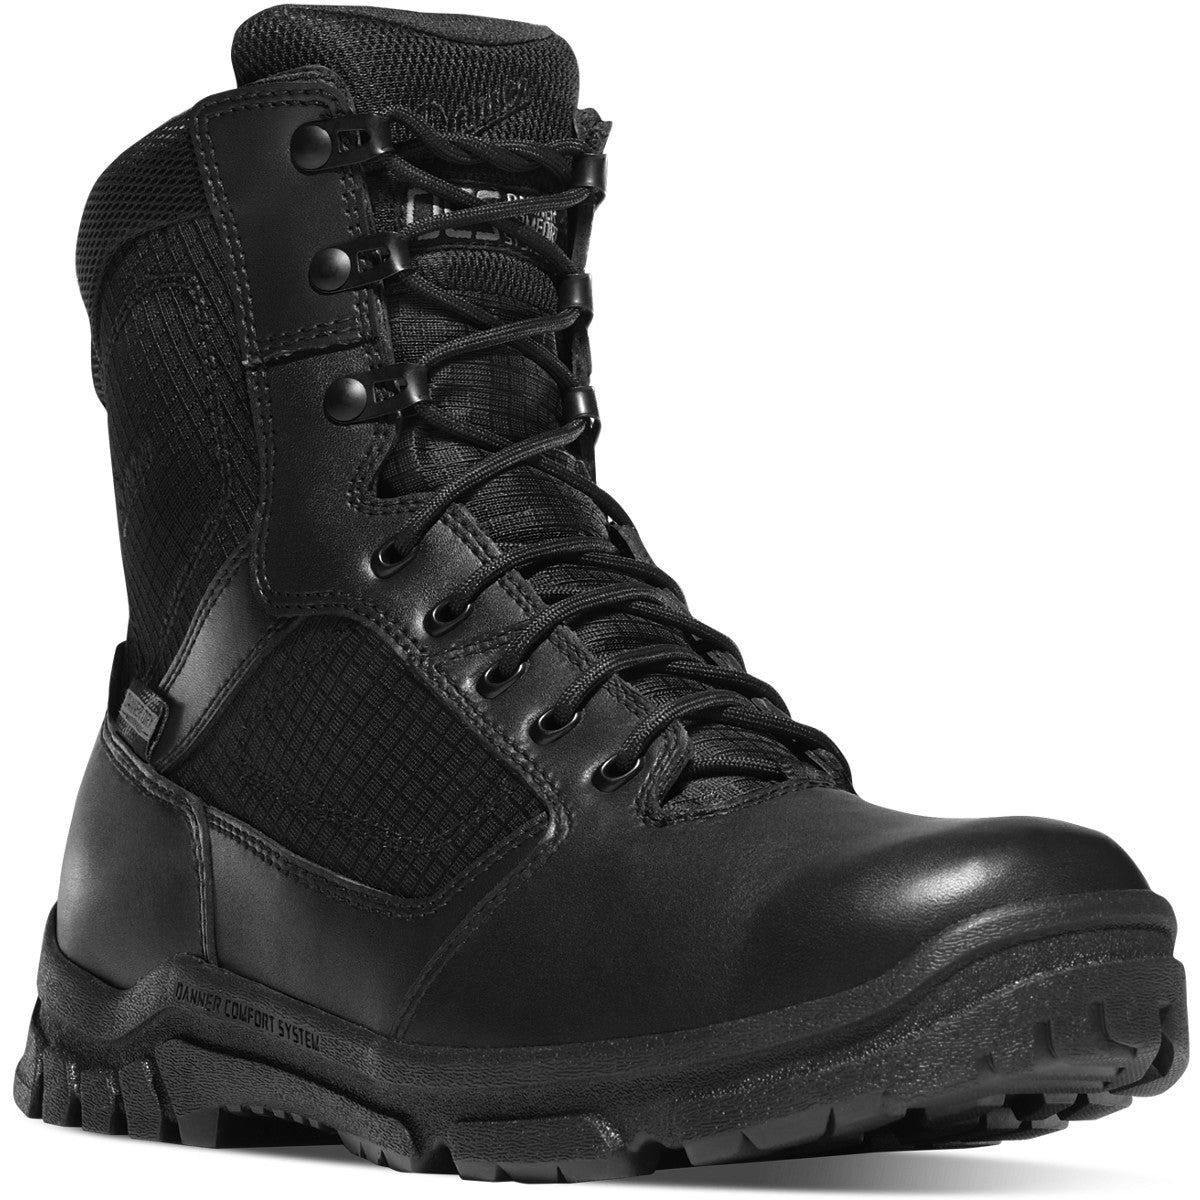 "Danner 8"" Lookout SZ WP"